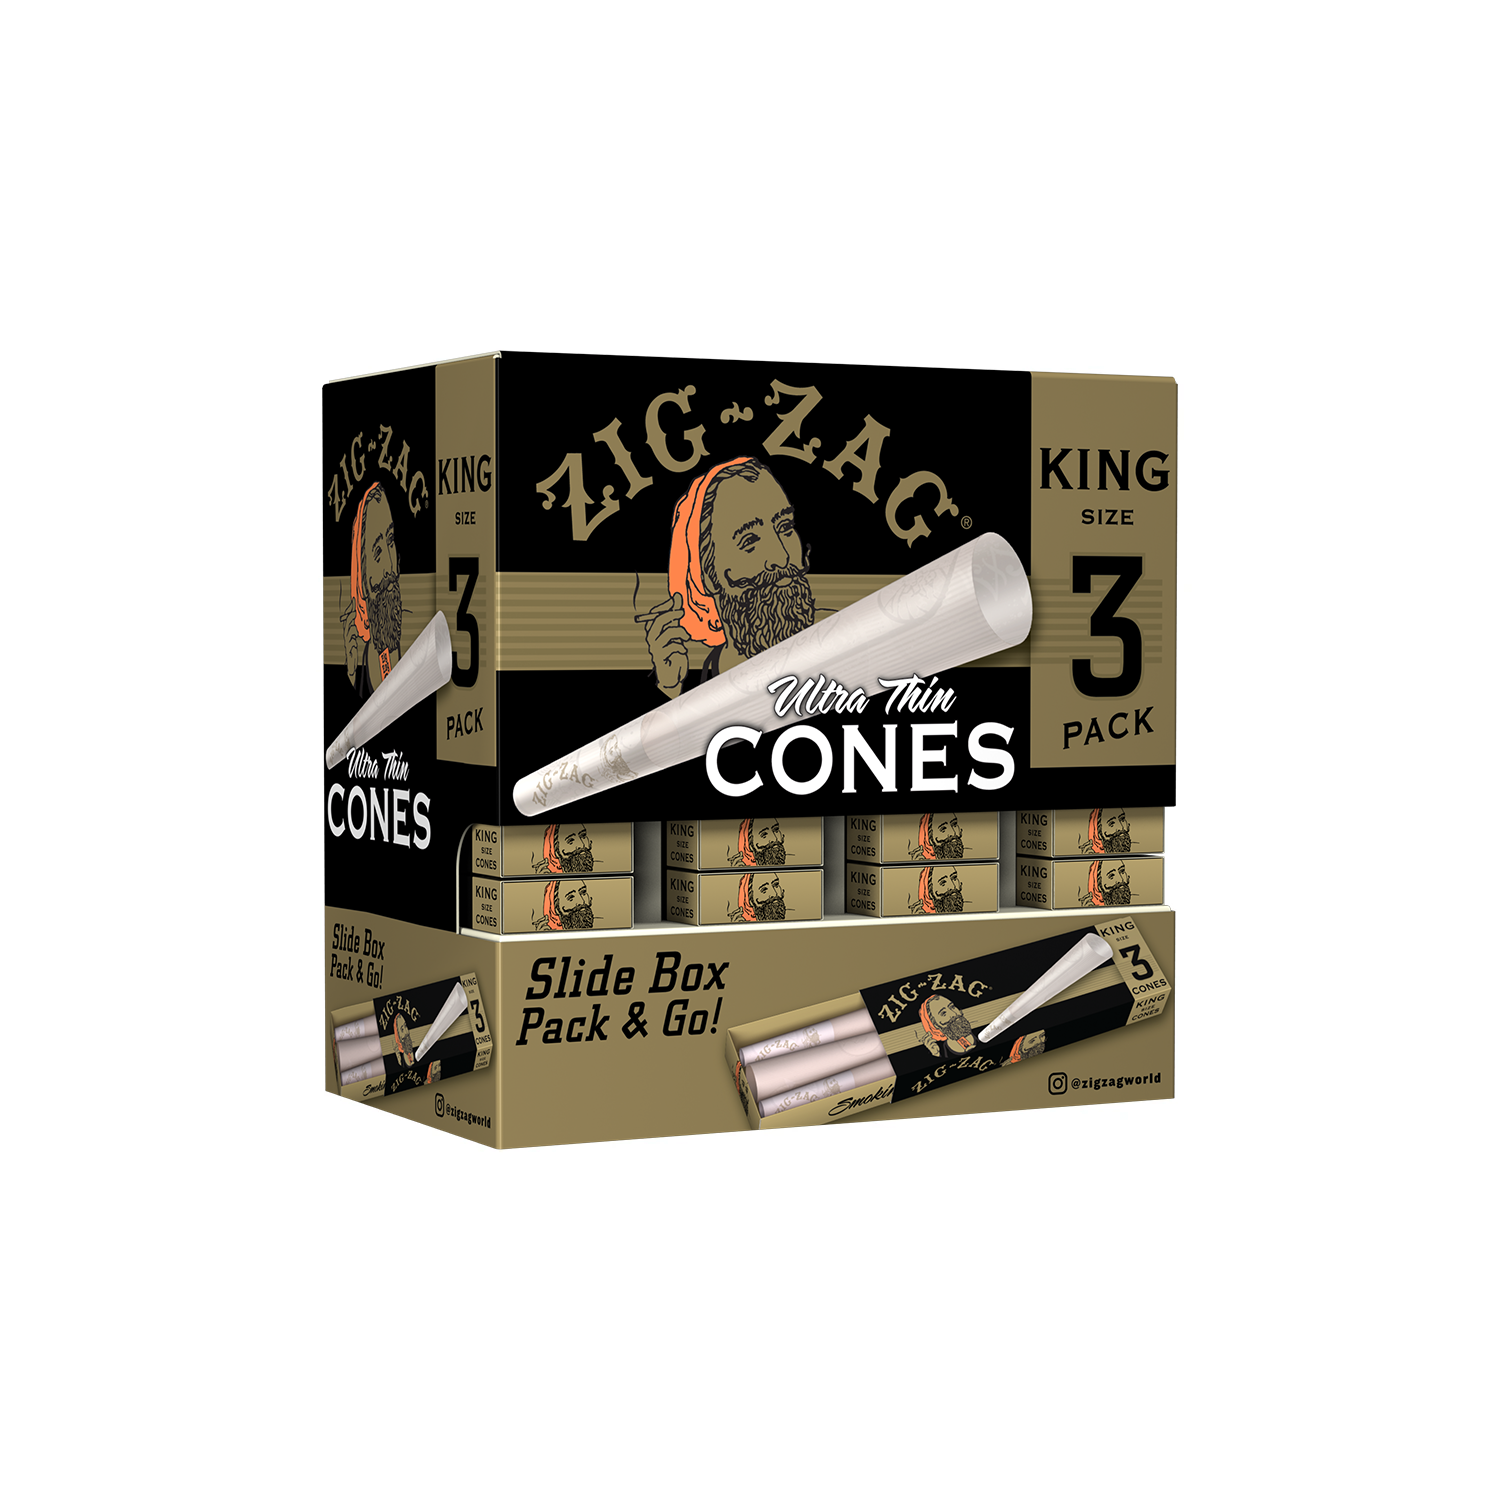 Promo Display (36 Pack) - King Size Cones